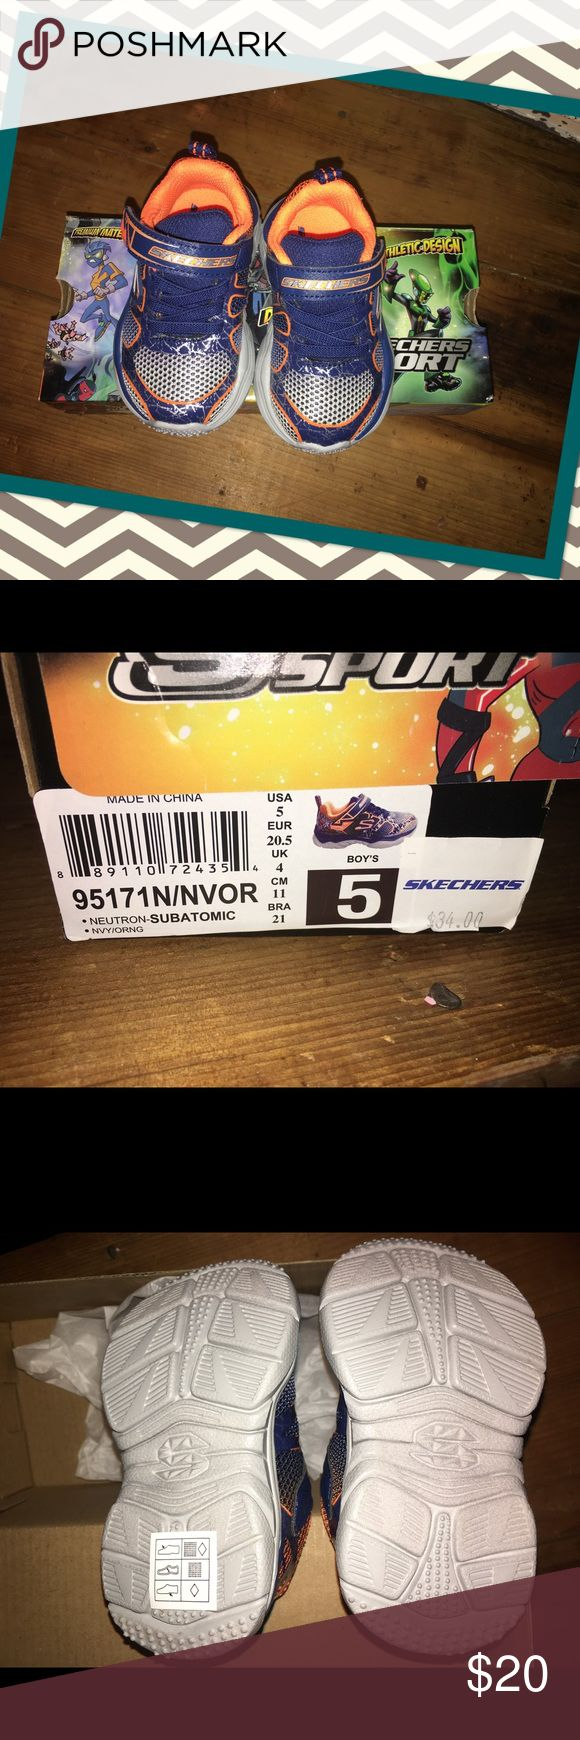 Baby boy size 5 Sketchers shoes Infant boys size 5 Sketchers tennis shoes. Brand new in box paid $34.00. Subatomic Spider-Man design. Skechers Shoes Baby & Walker